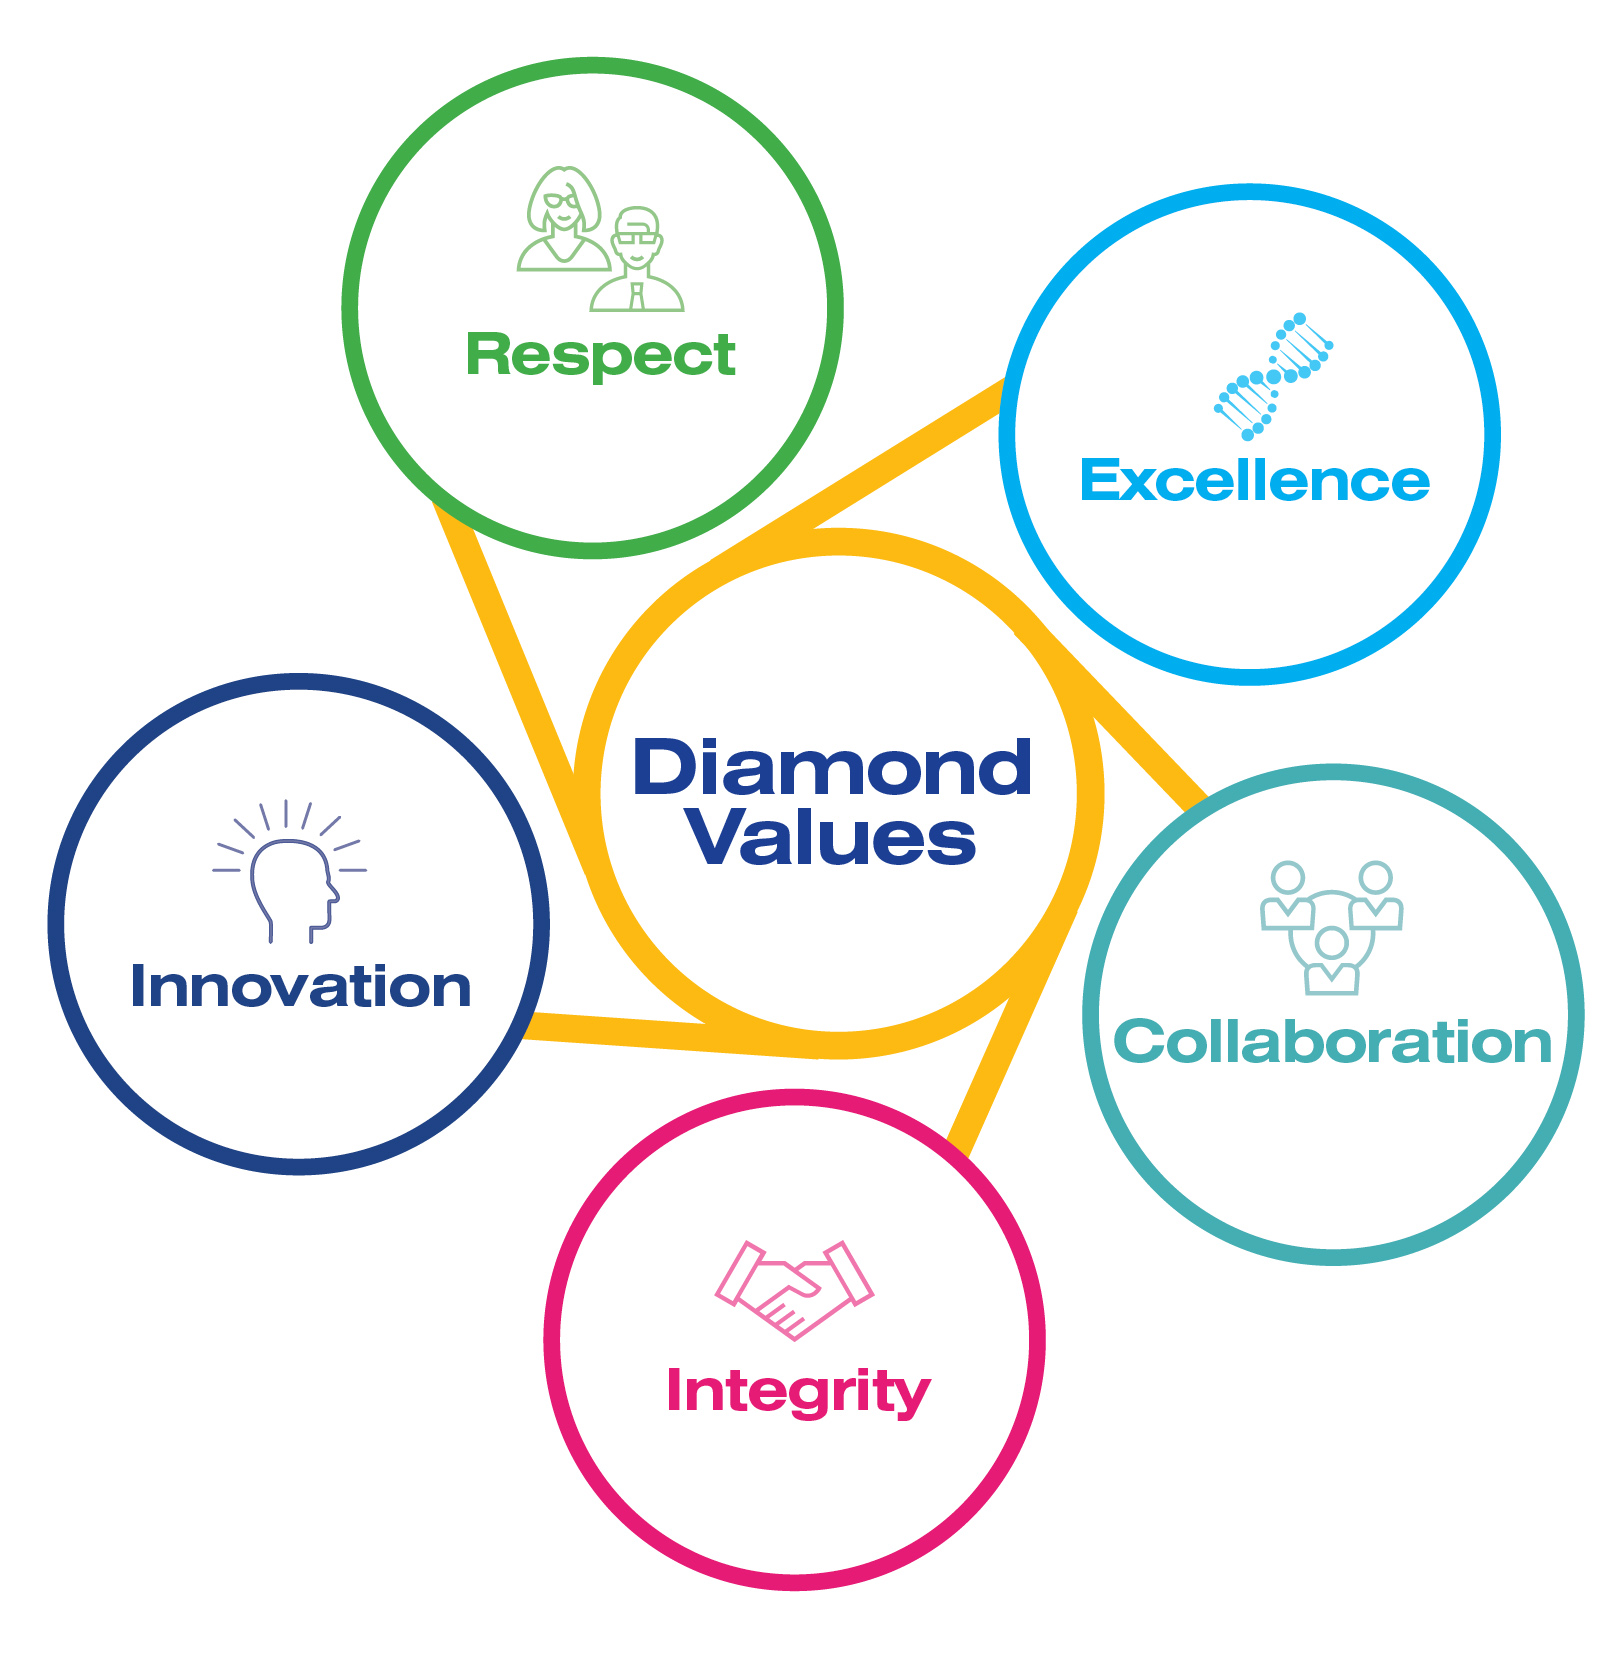 Diamond's values are Respect, Excellence, Collaboration, Integrity and Integration